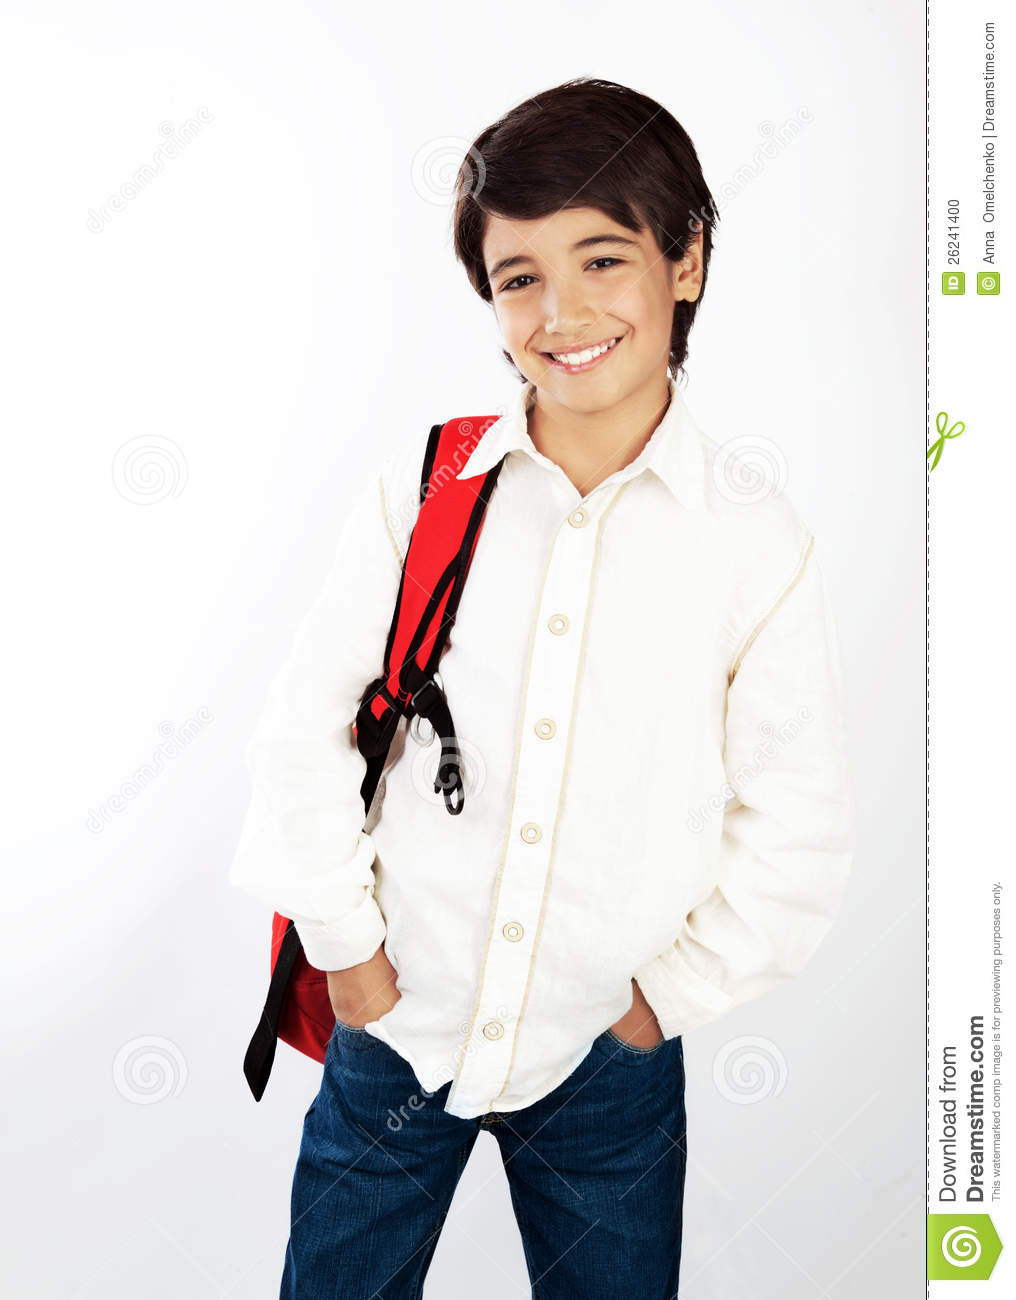 Https Www Dreamstime Com Stock Photo Nice Smiling School Boy Image26241400